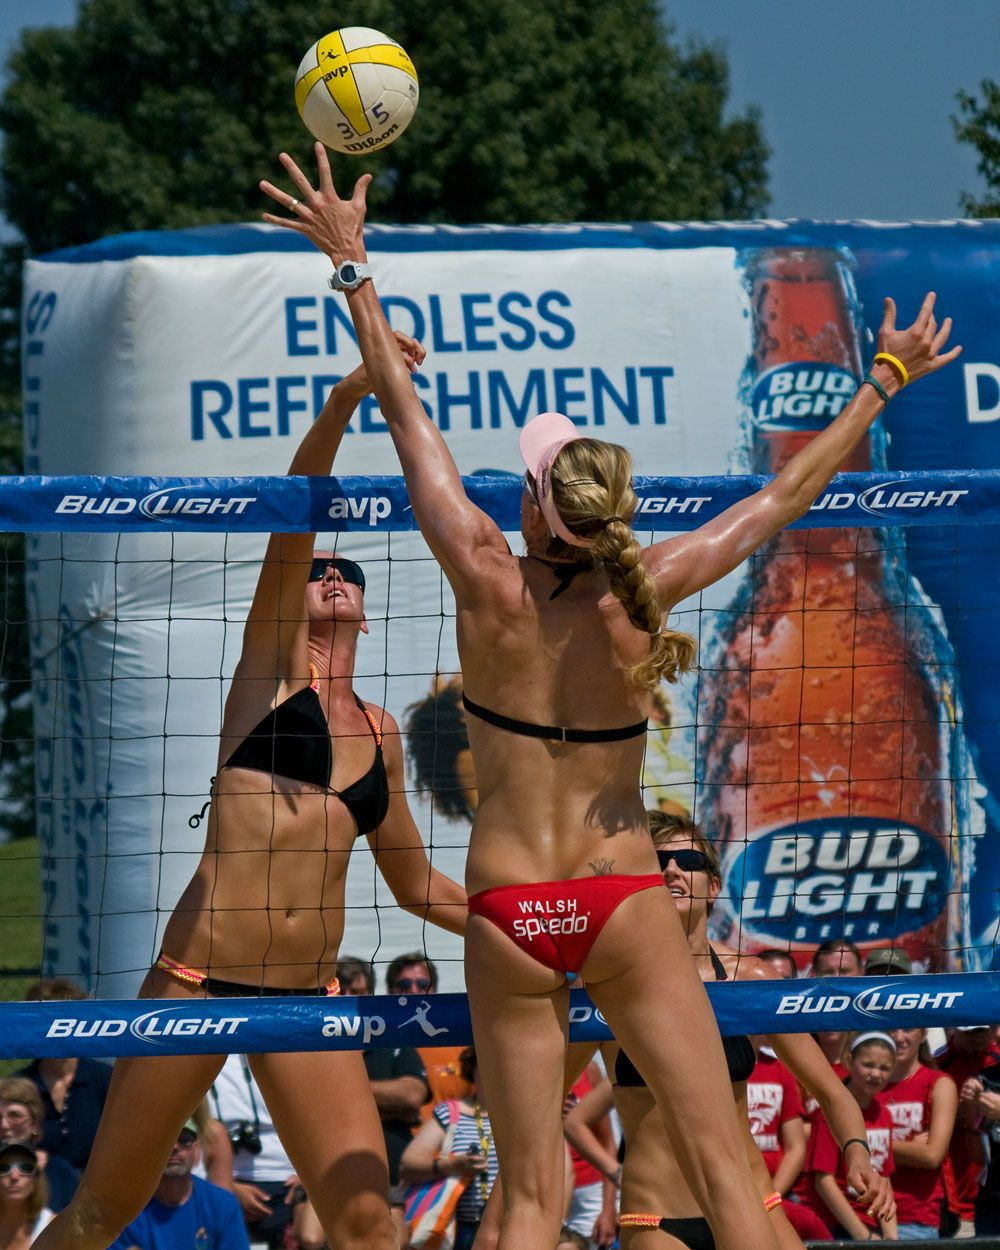 Pro Beach Volleyball Beach Volleyball Volleyball Outdoor Workouts